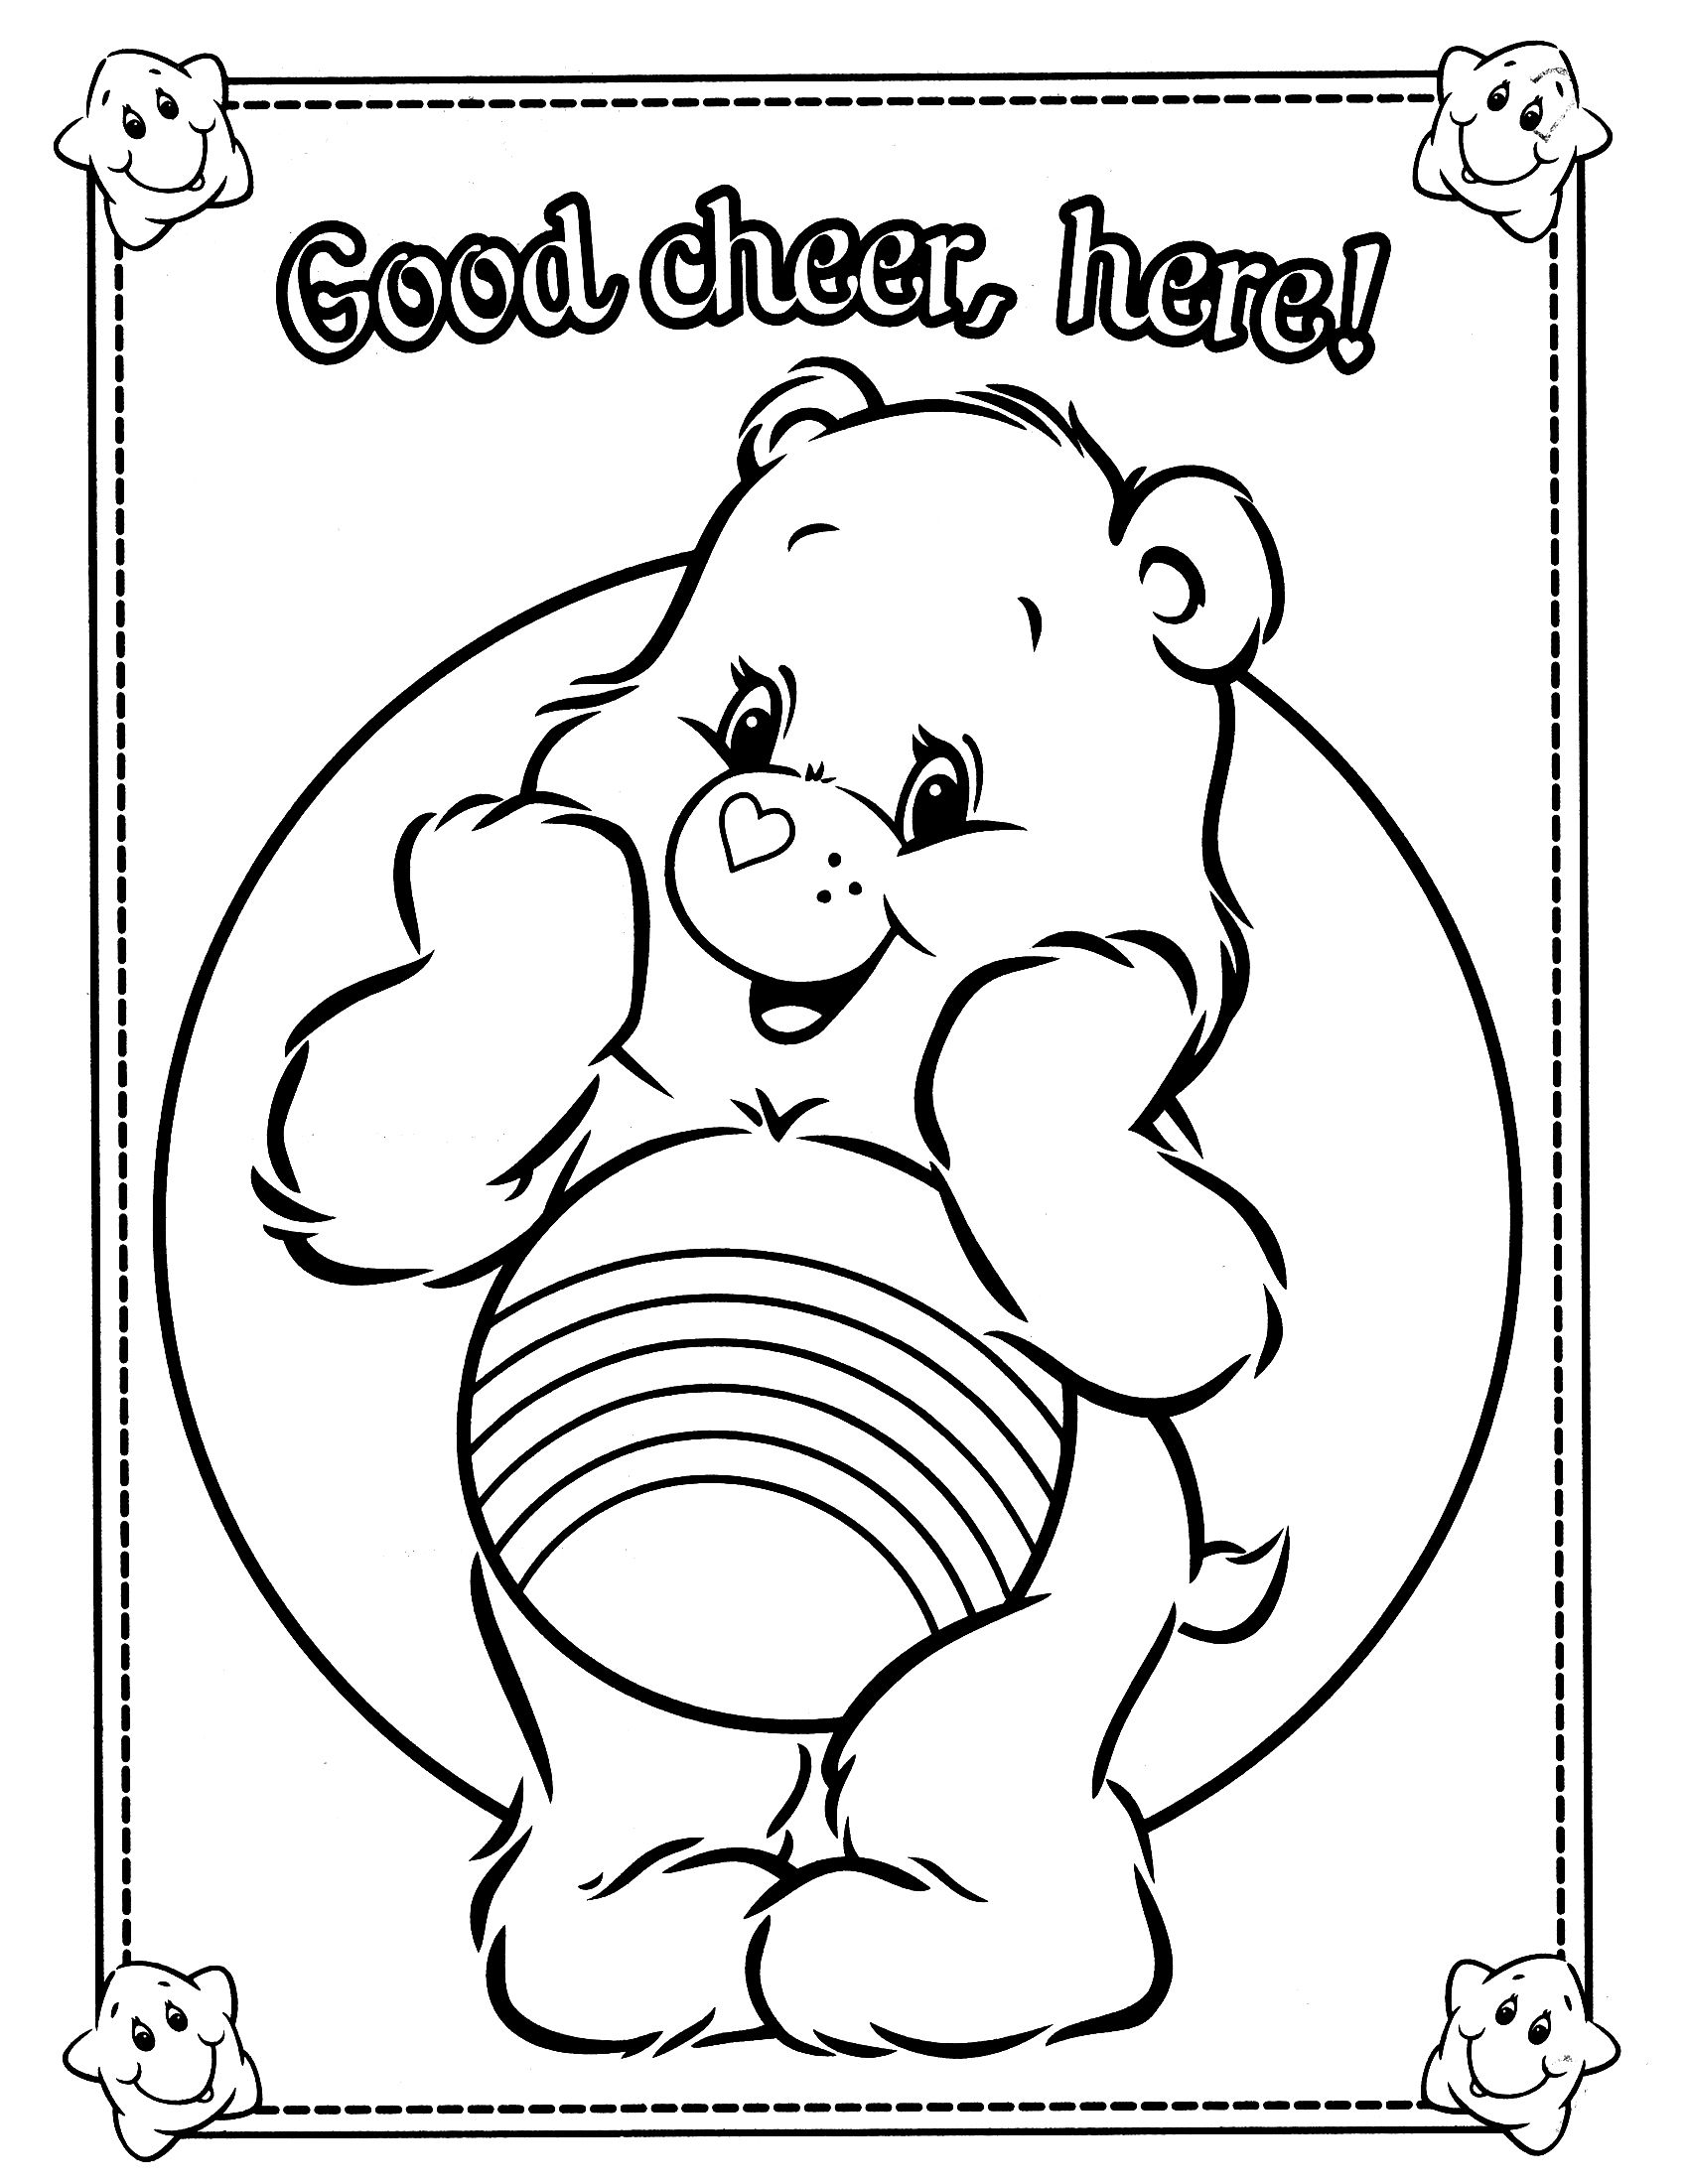 Care Bears Coloring Page Bear Coloring Pages Cartoon Coloring Pages Coloring Pages